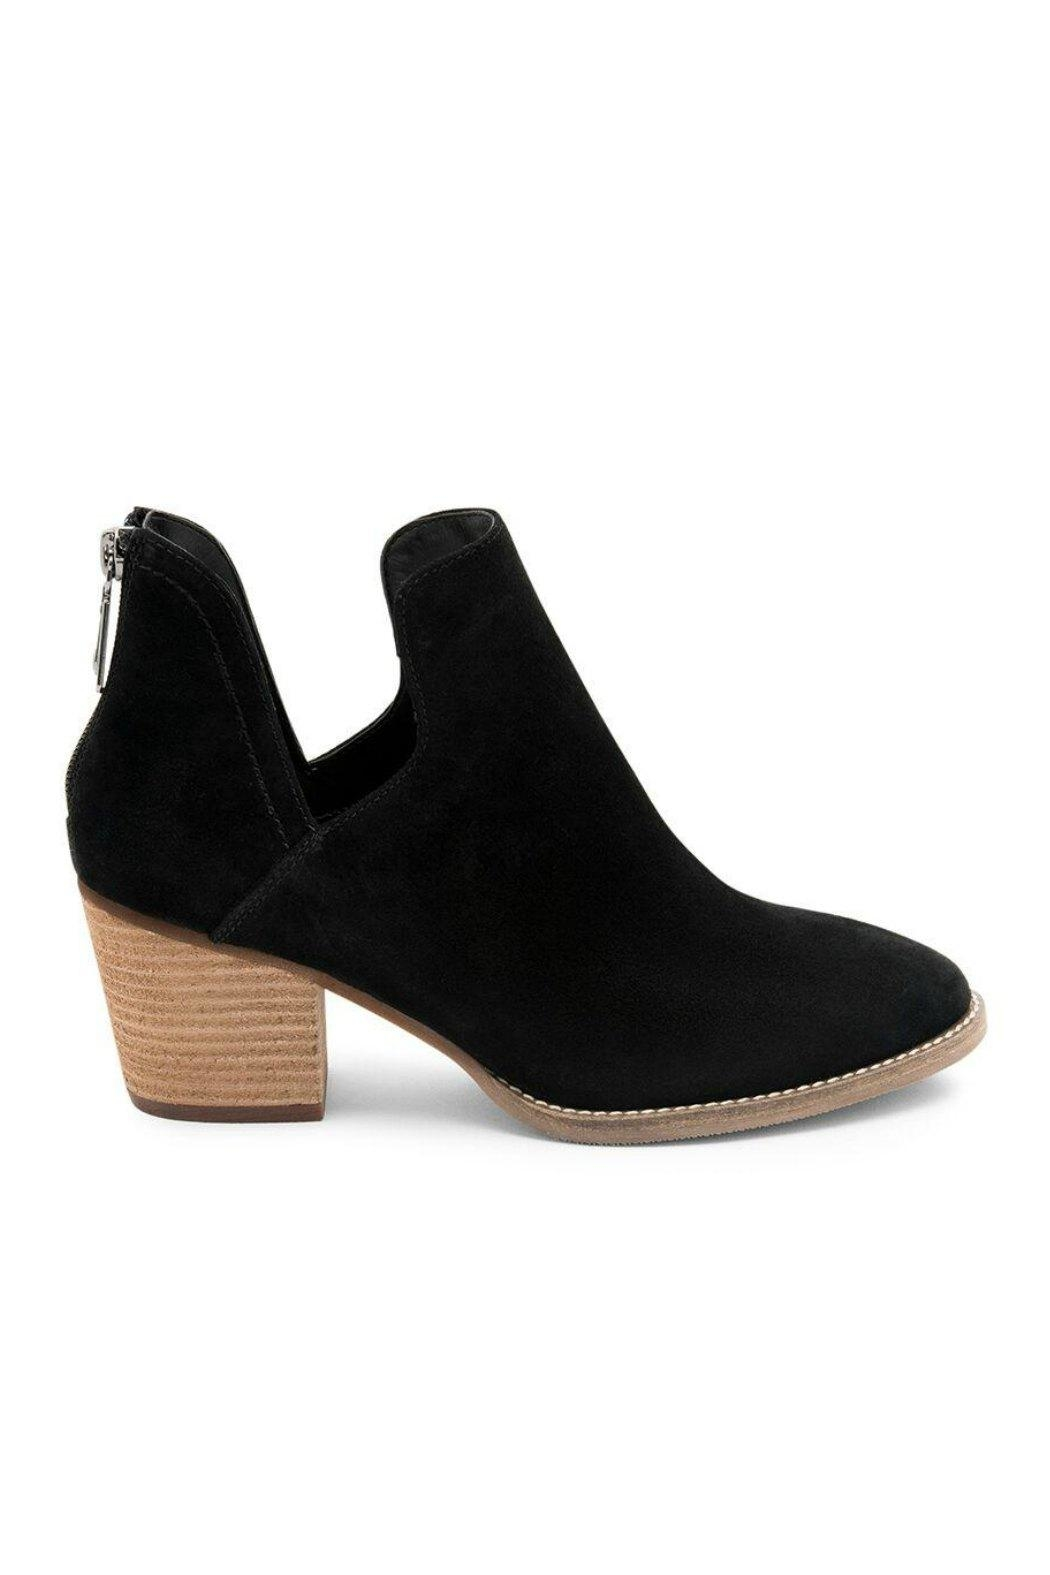 Blondo Nelson Suede Bootie - Front Full Image